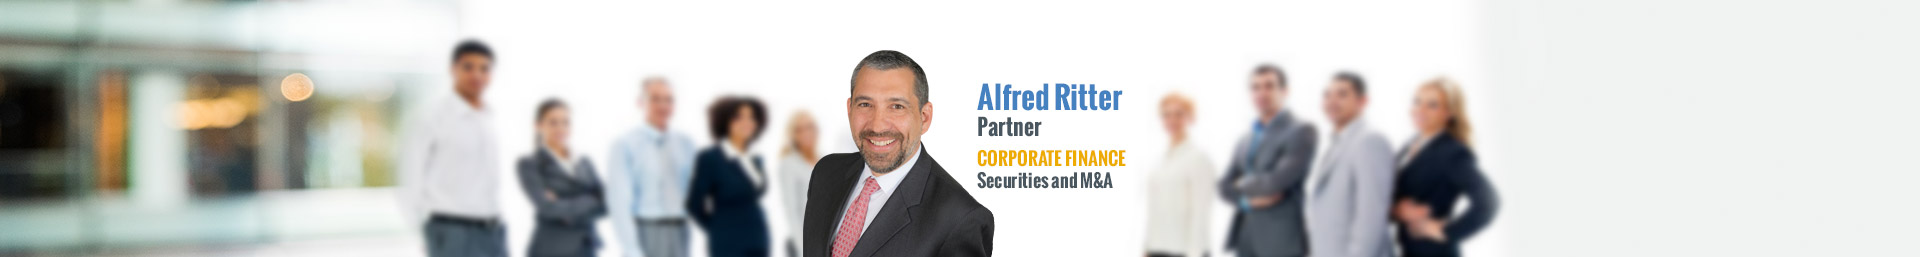 Alfred Ritter